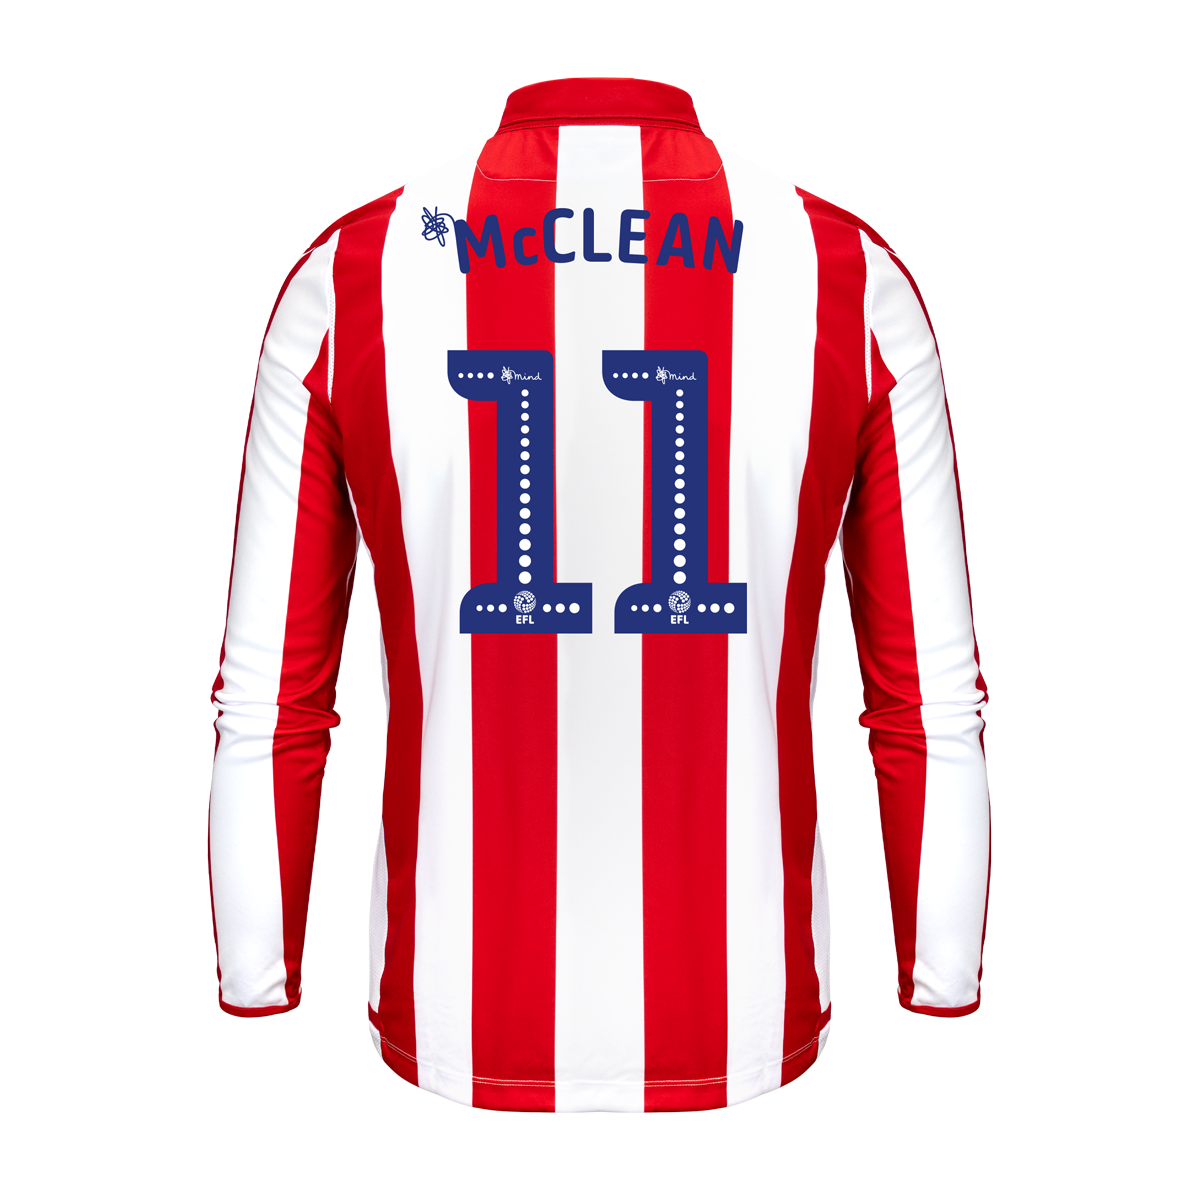 2019/20 Adult Home LS Shirt - McClean